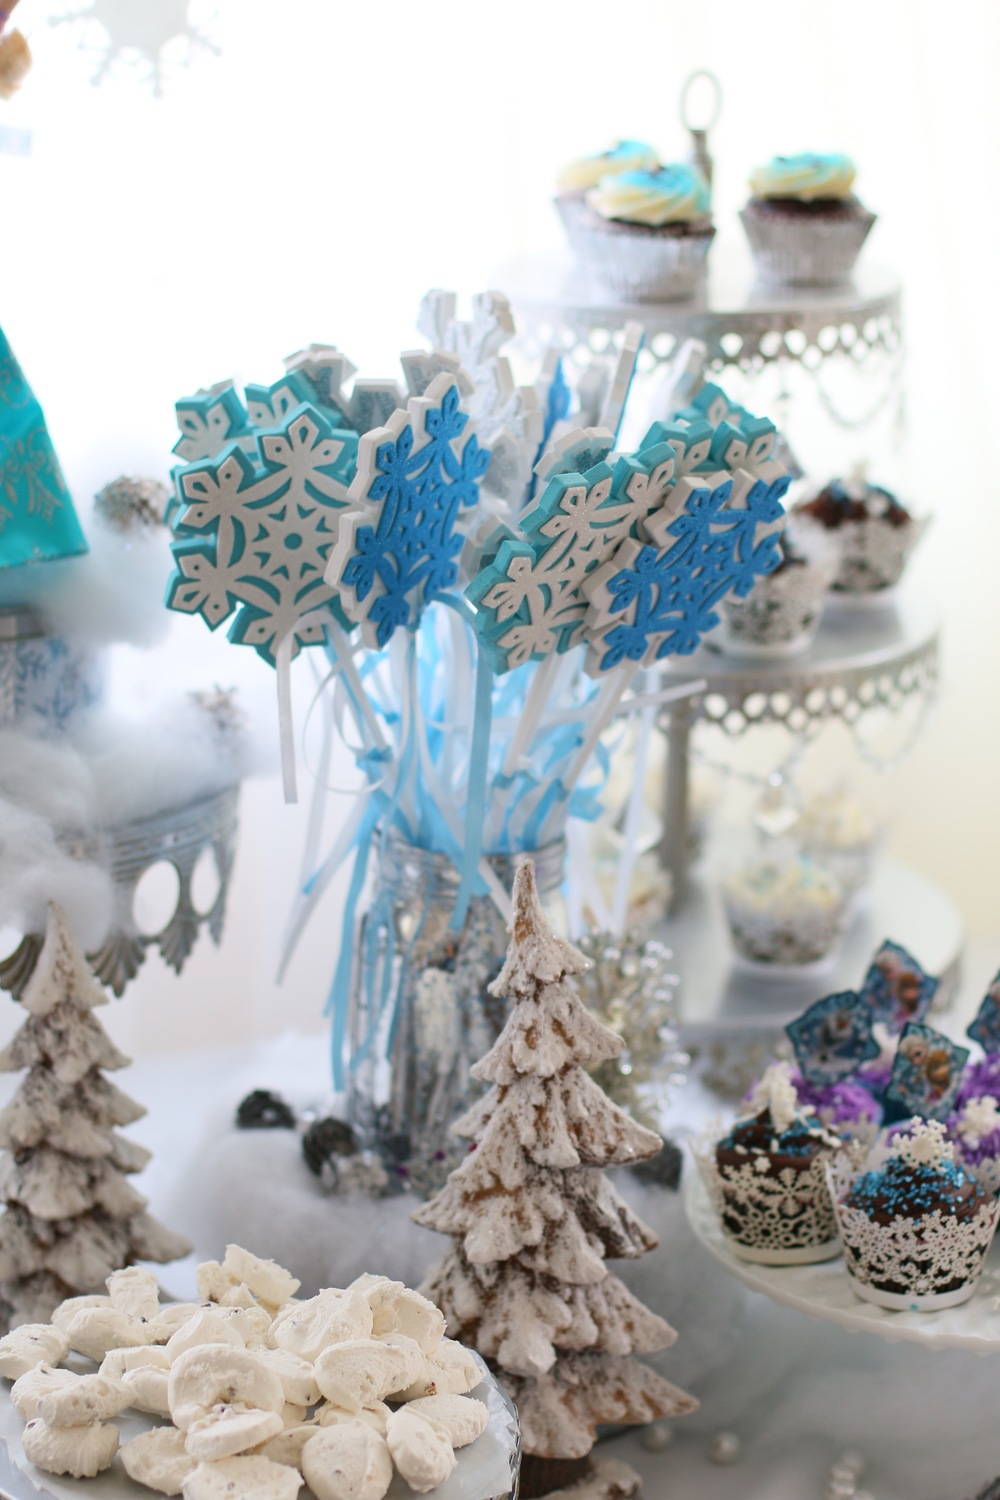 Copy of Party Favors - A great add on to our FROZEN rental package! @inJOYtheParty